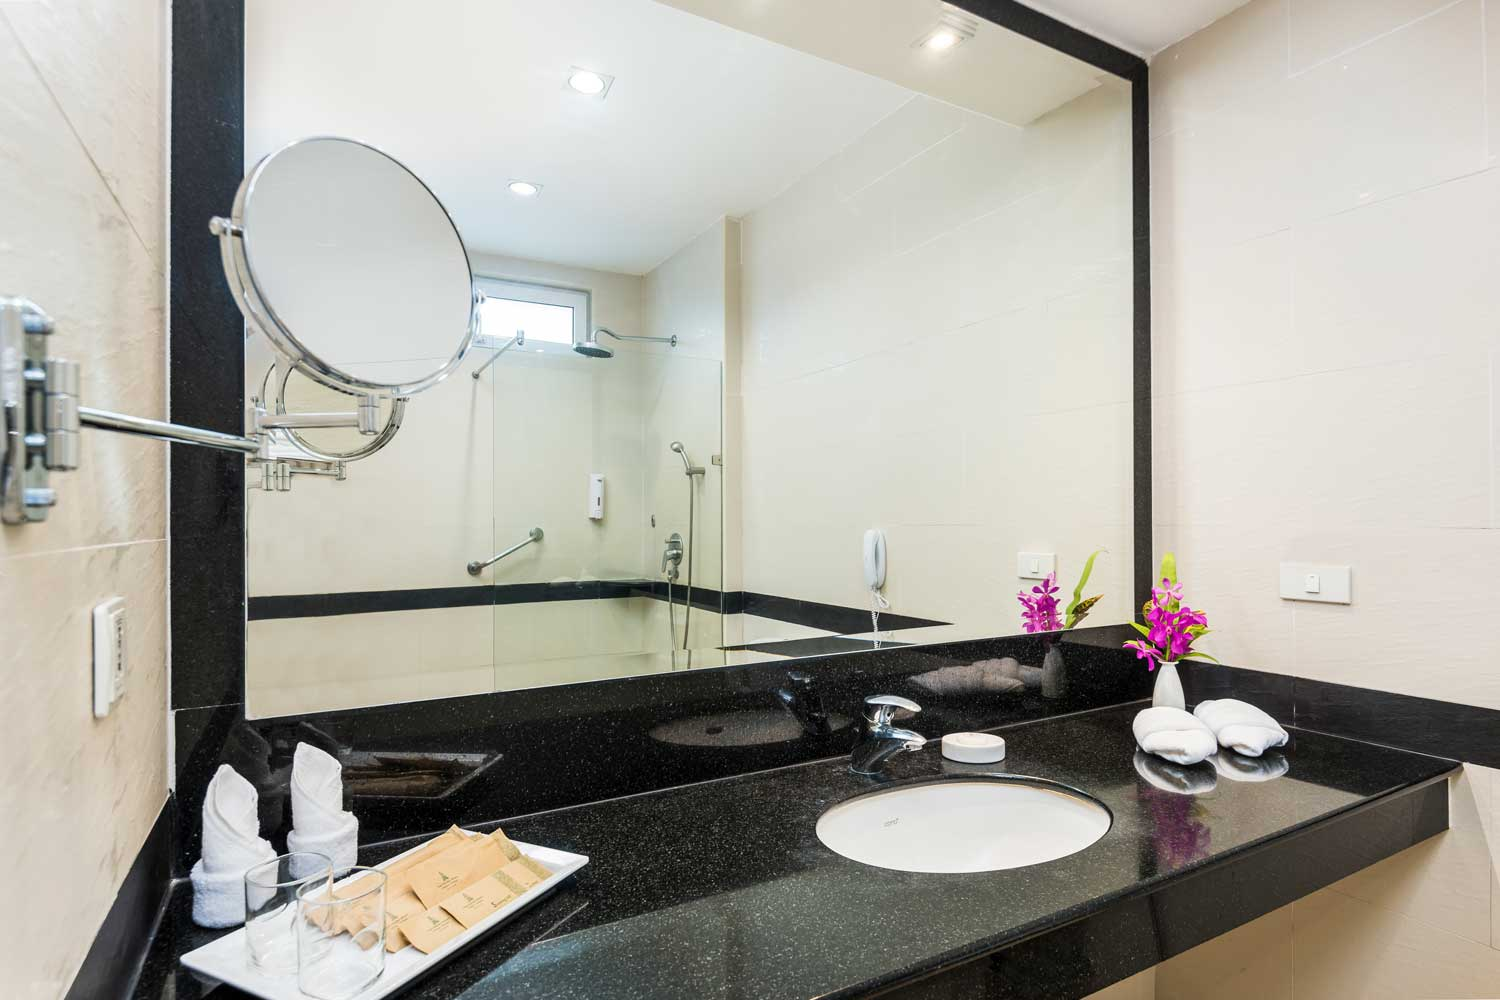 The Bathroom of the Deluxe hotel room with a pool view of the Thai Garden Resort in Pattaya, Thailand.